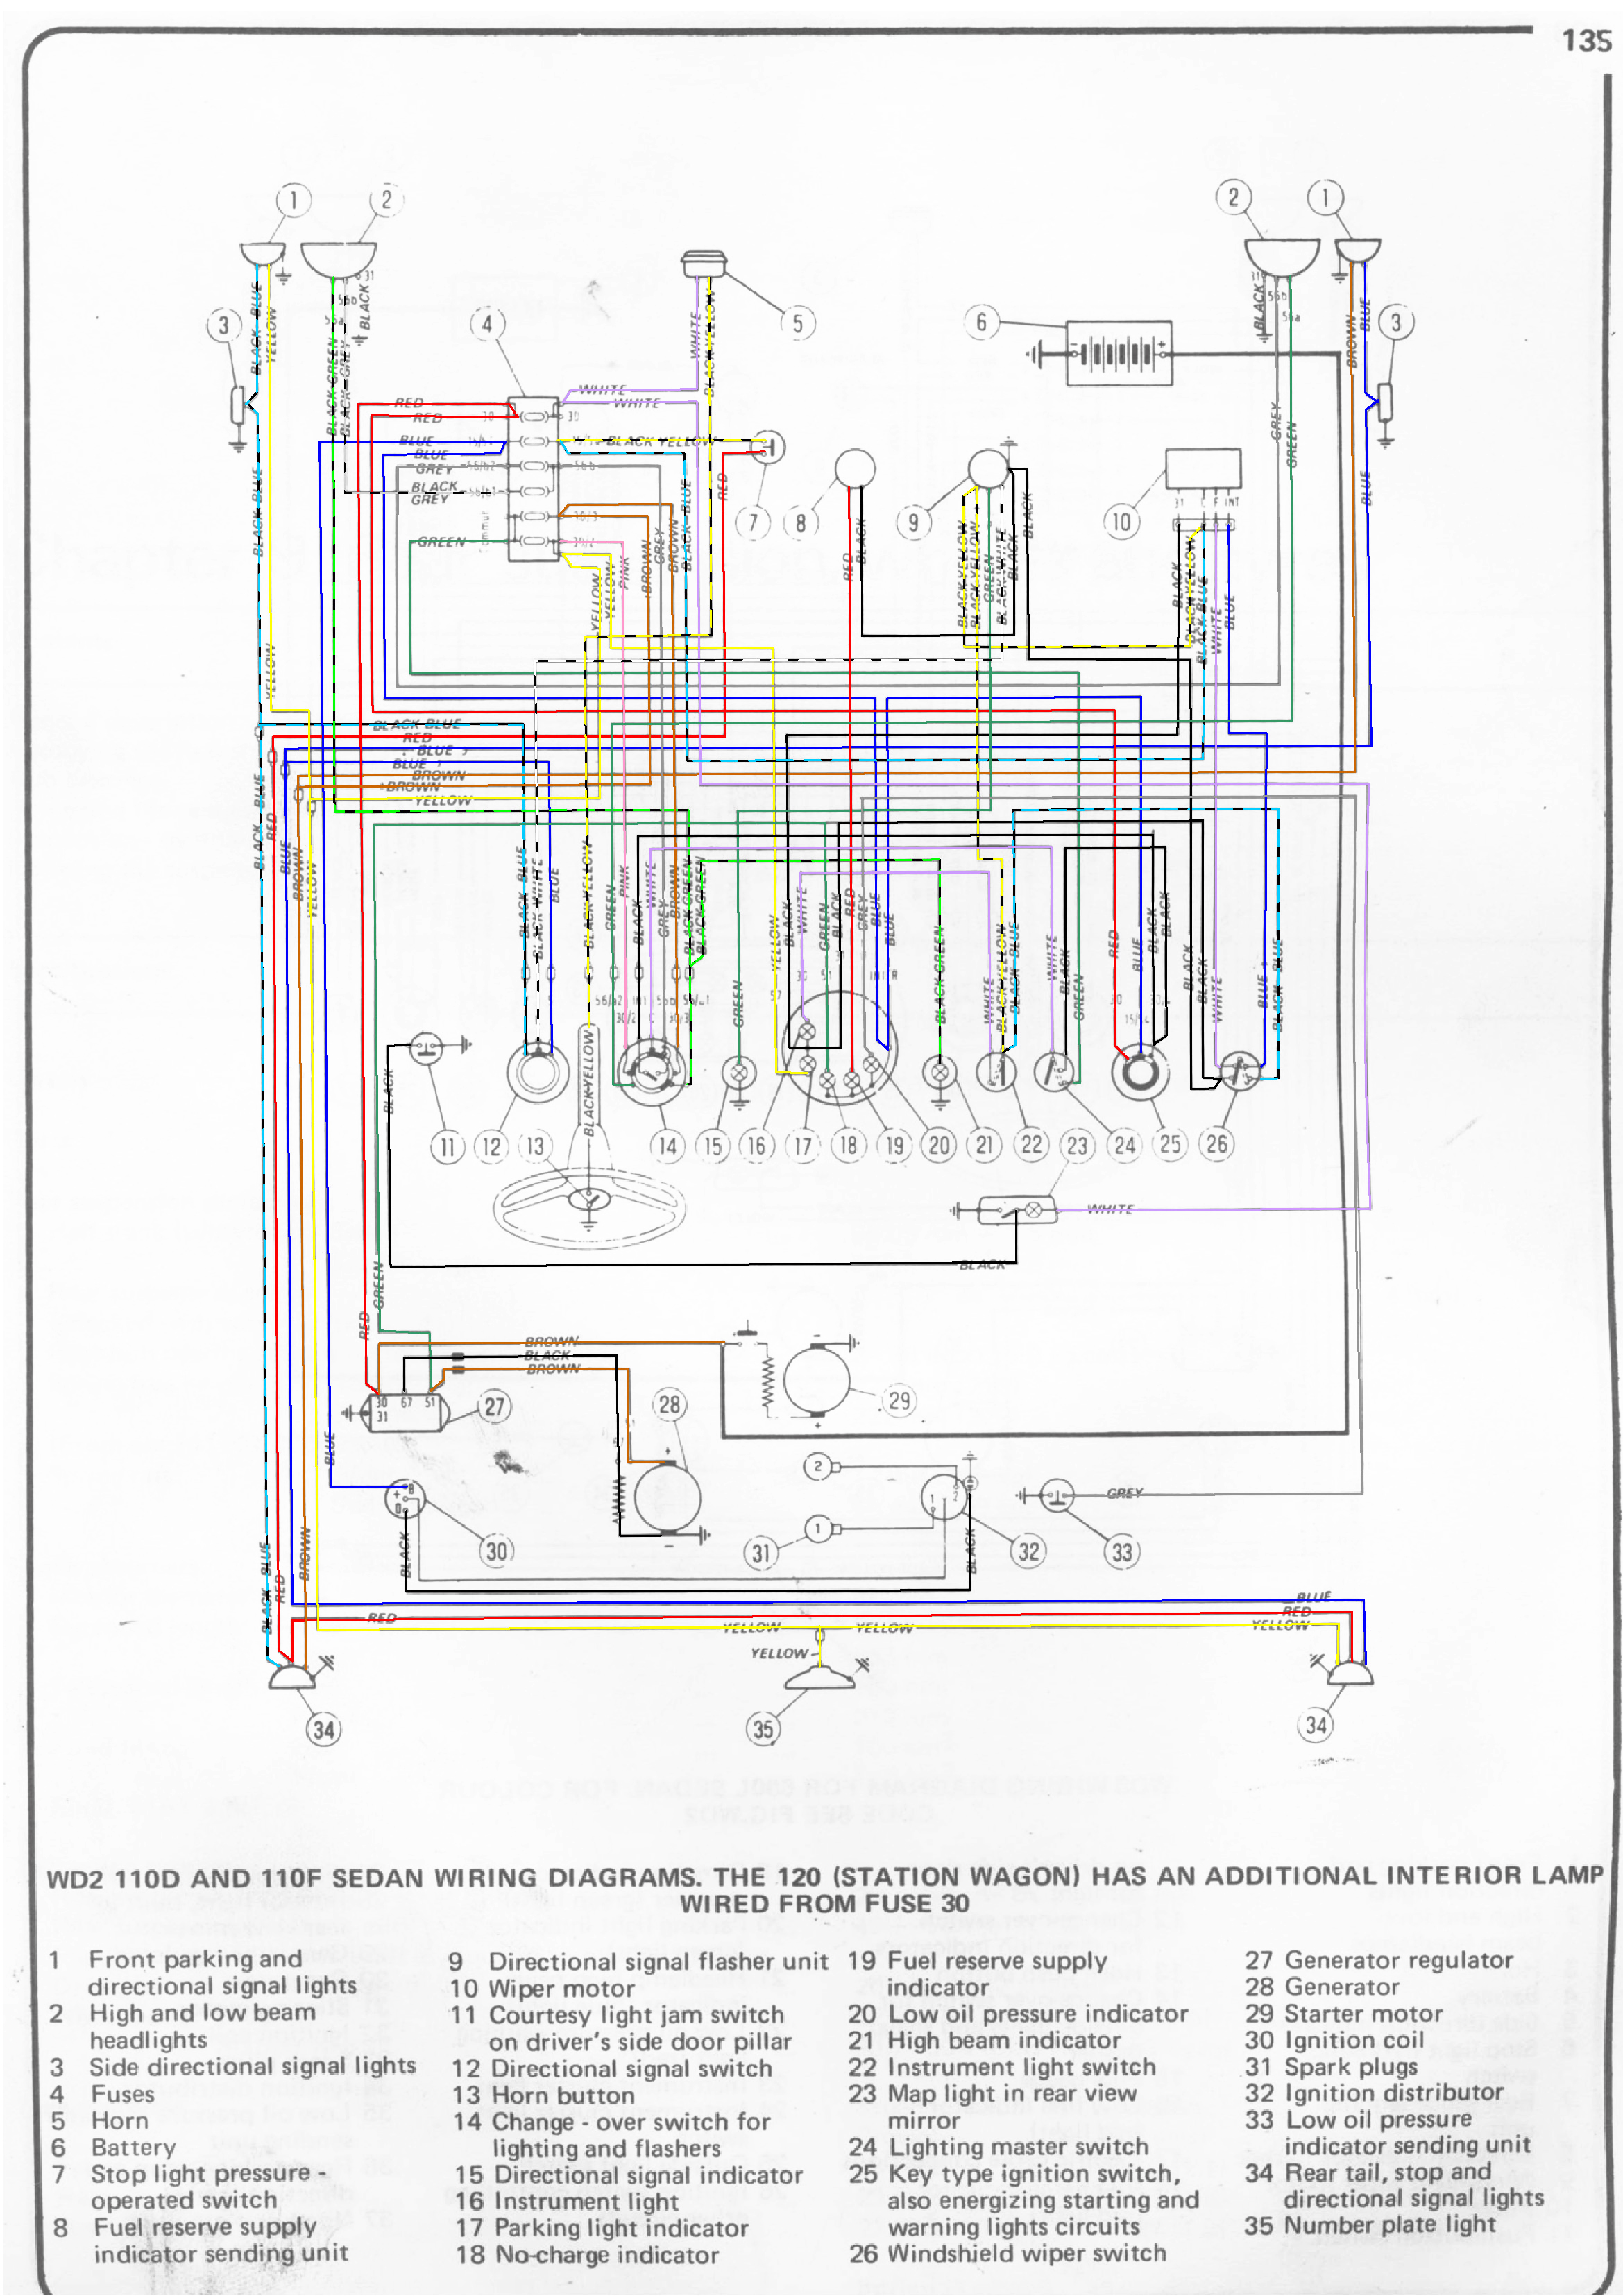 Apc Matrix 500 Wiring Diagram Electrical Schematics Ups Battery Backup Trusted Diagrams Hewlett Packard